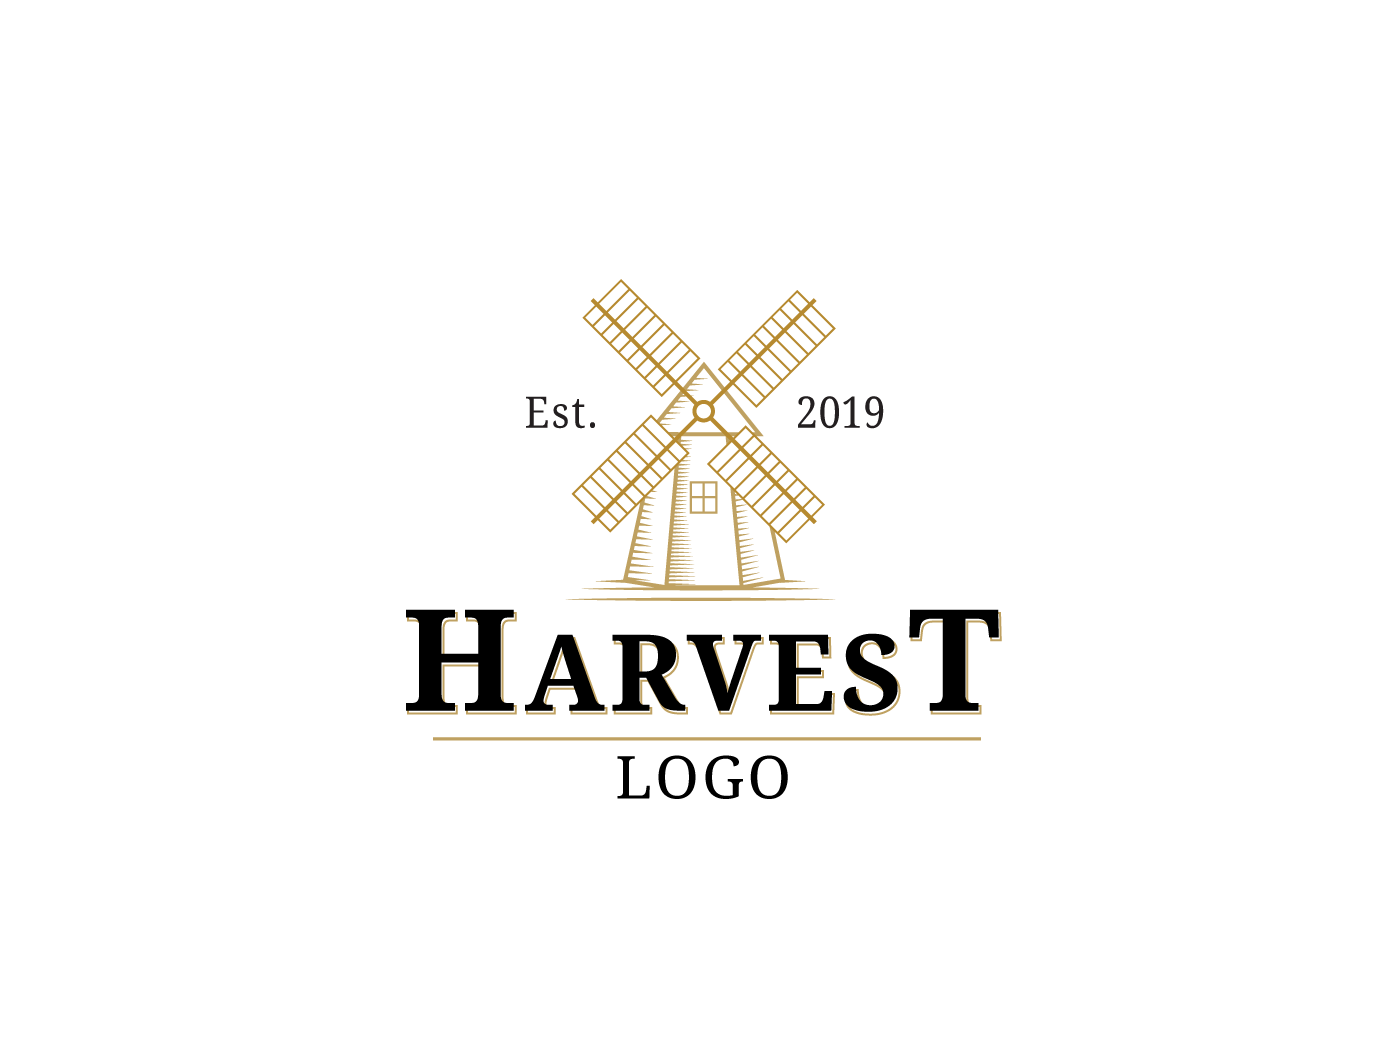 Harvest Logo by Nikoloz Molodinashvili on Dribbble.